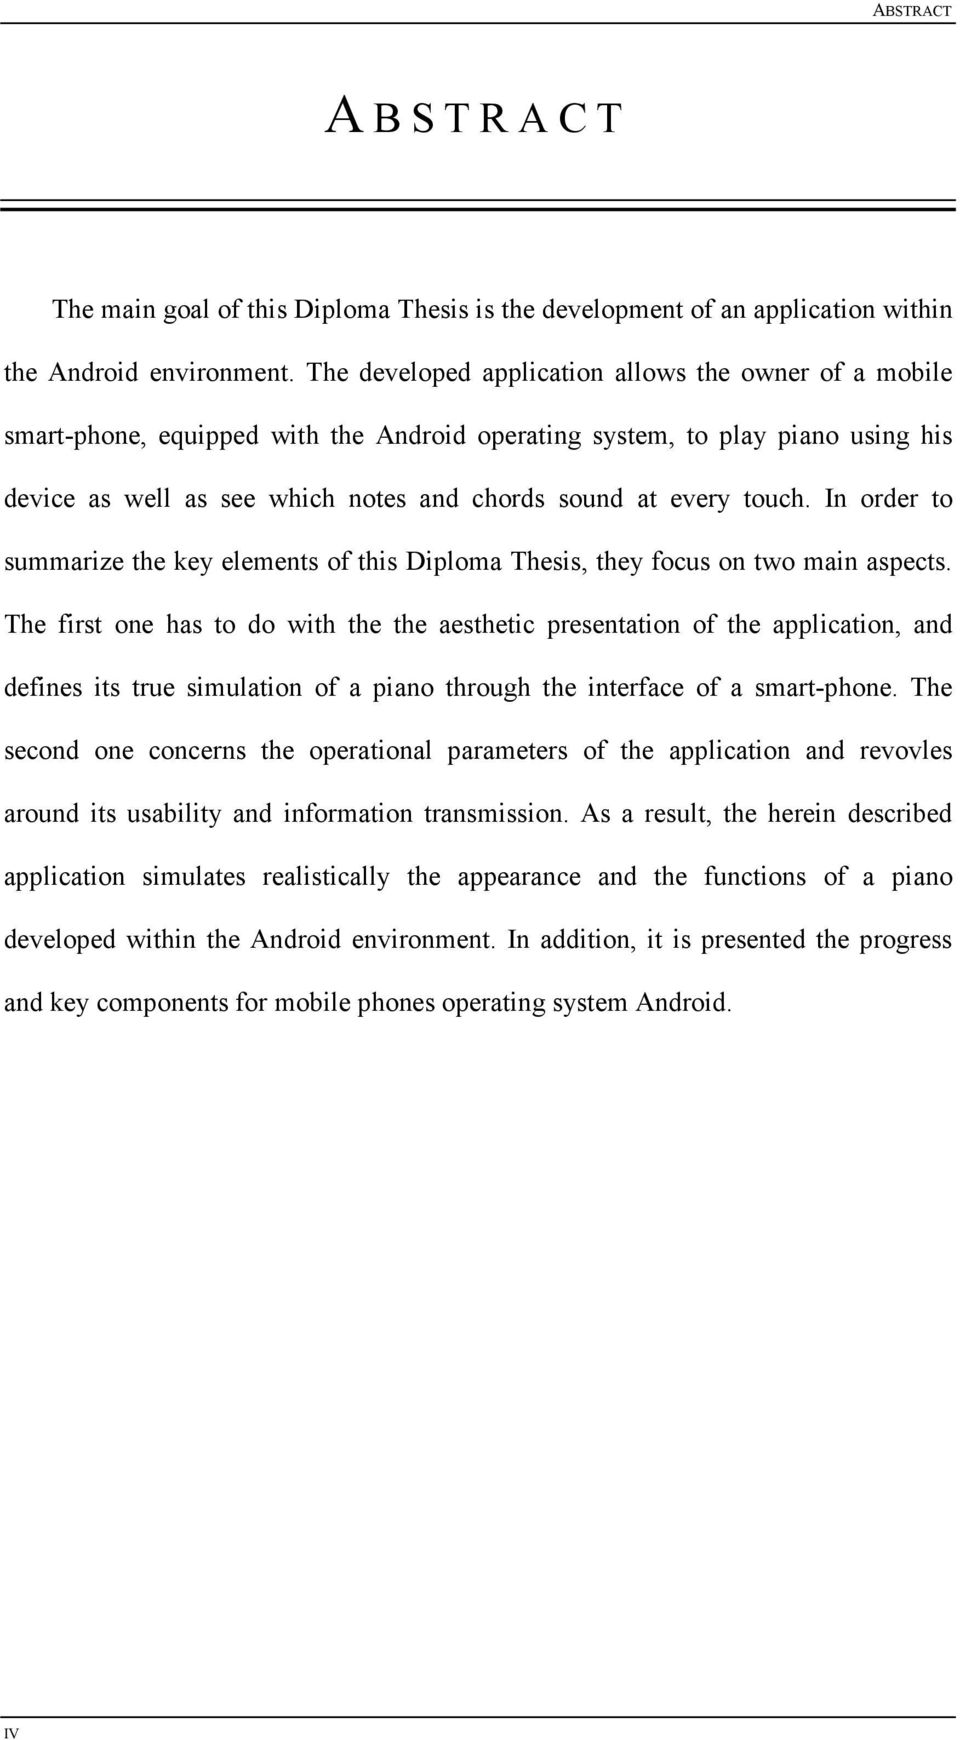 touch. In order to summarize the key elements of this Diploma Thesis, they focus on two main aspects.